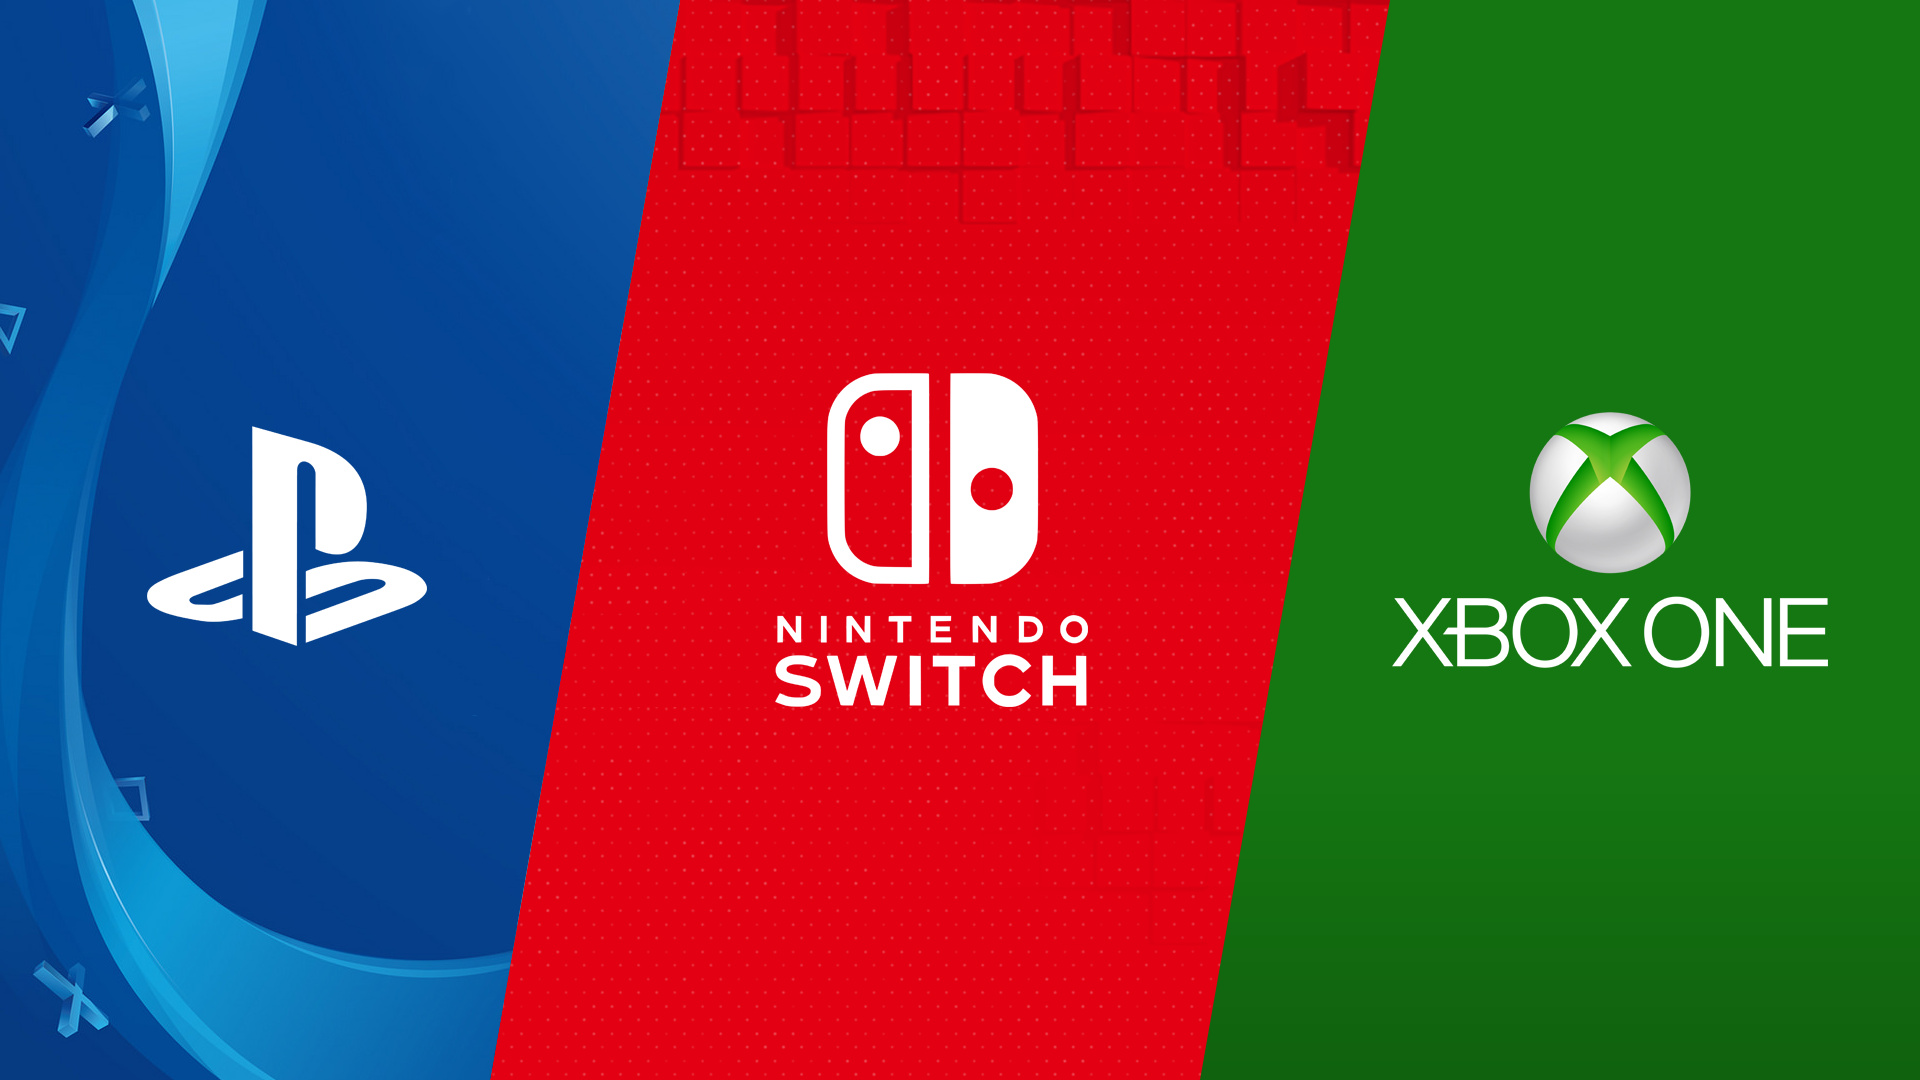 Fortnite Cross Platform Linked Wrong Xbox Account Ps4 Finally Supports Full Cross Play With Switch And Other Consoles According To New Report Nintendo Life